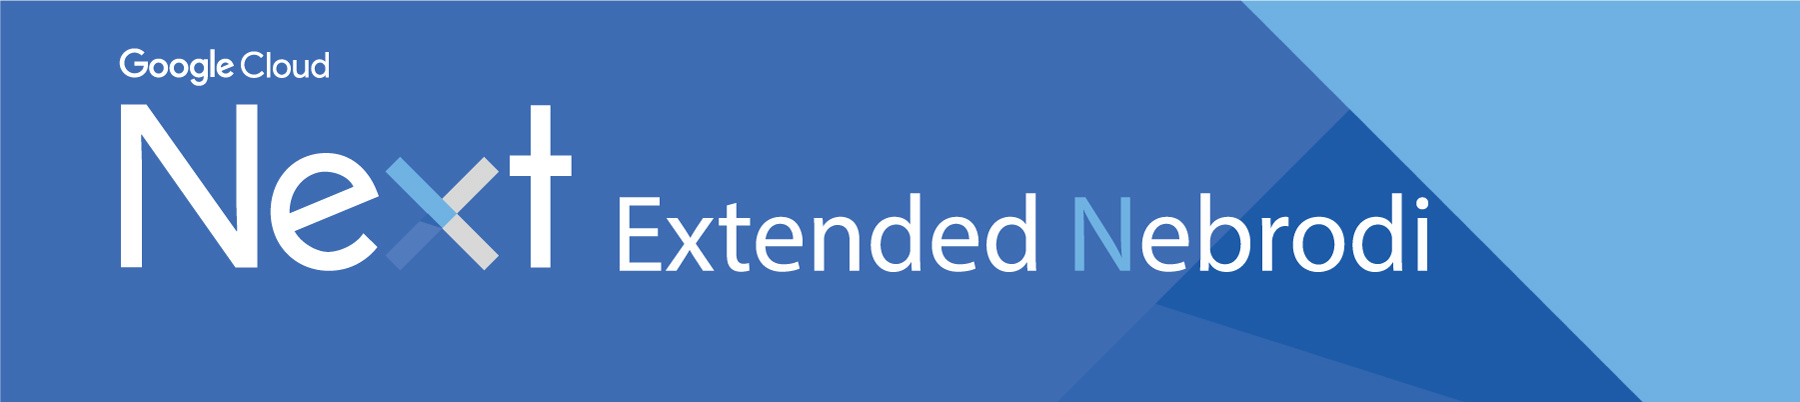 google cloud next extended gdg